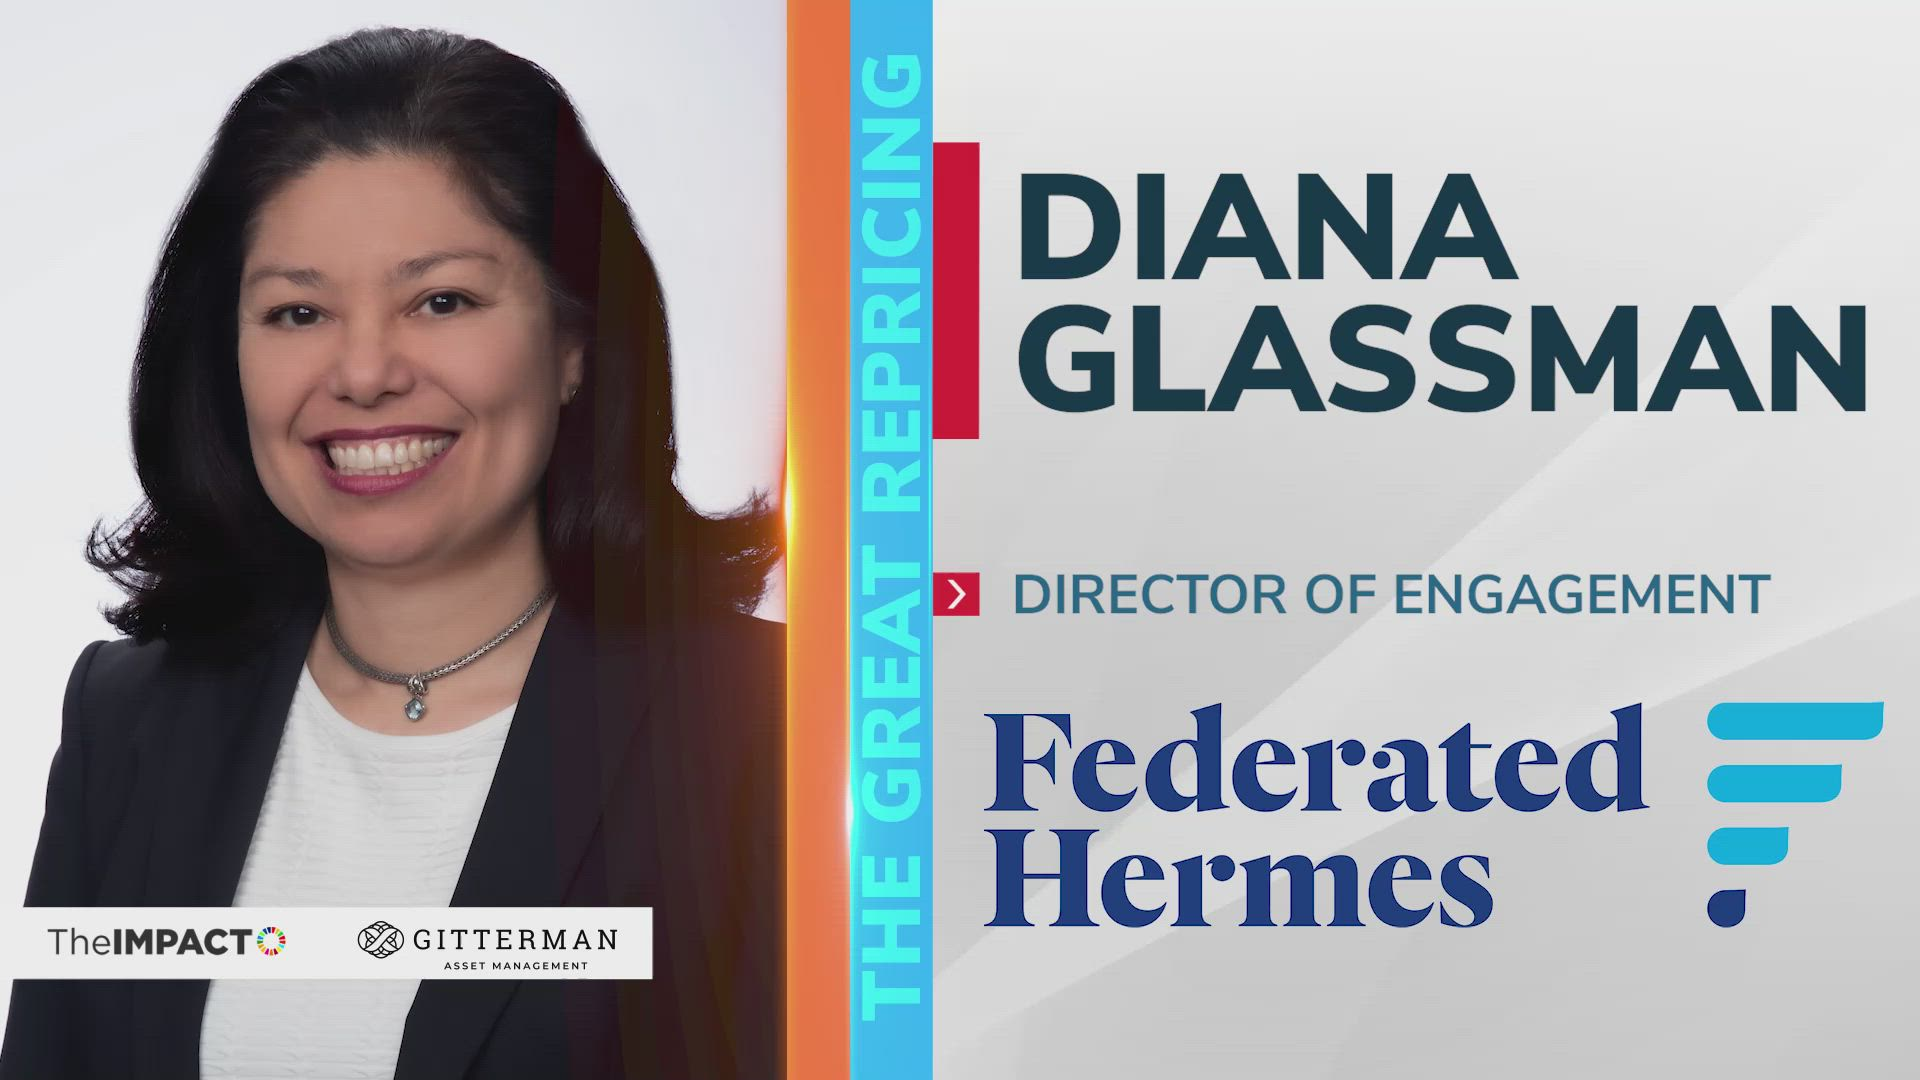 Diana Glassman, Director of Engagement of Federated Hermes